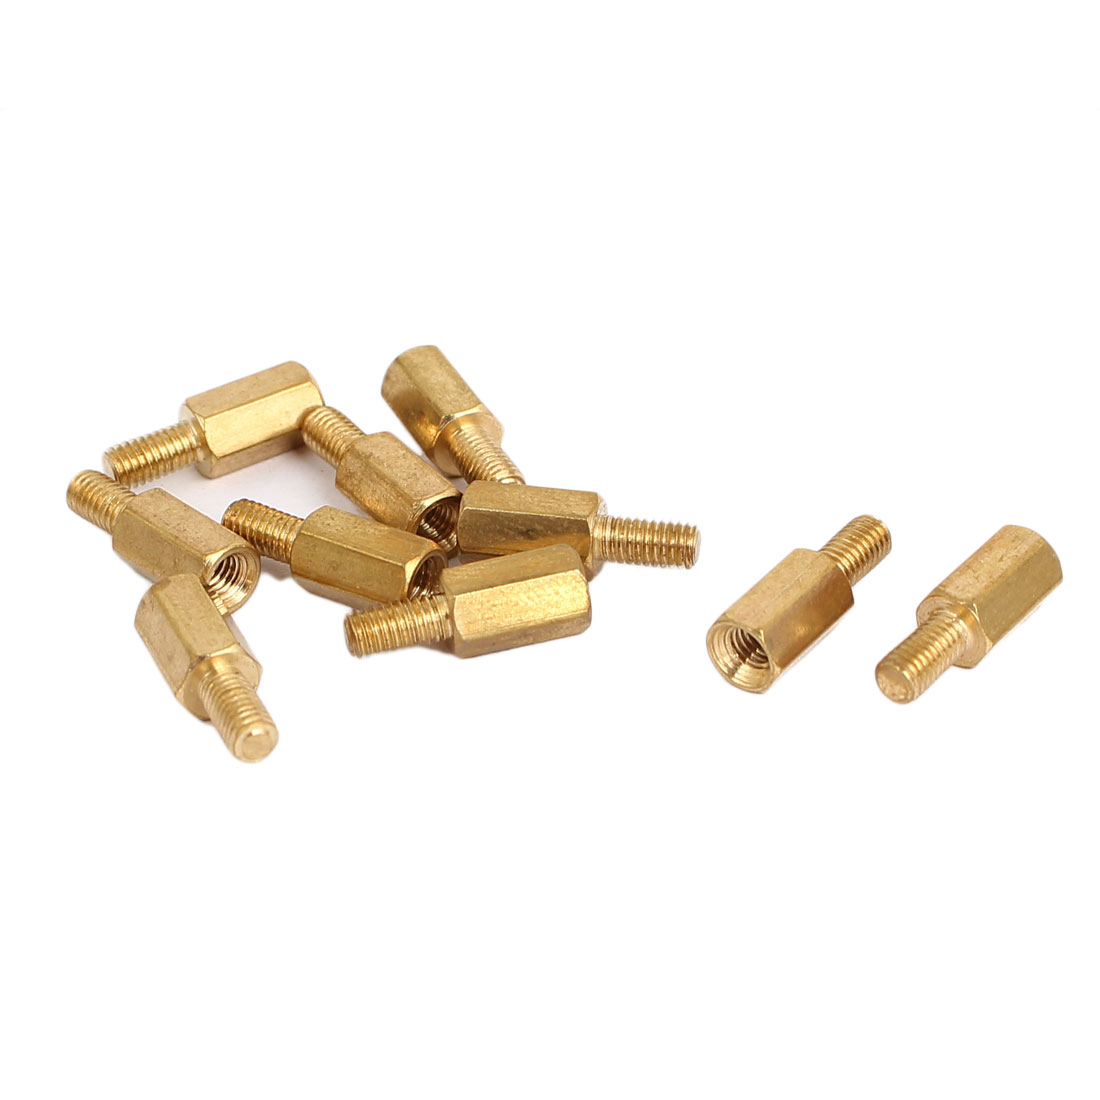 M3 Hexagonal Pillar Male to Female Thread PCB Standoff Spacer 8mm+6mm 10pcs